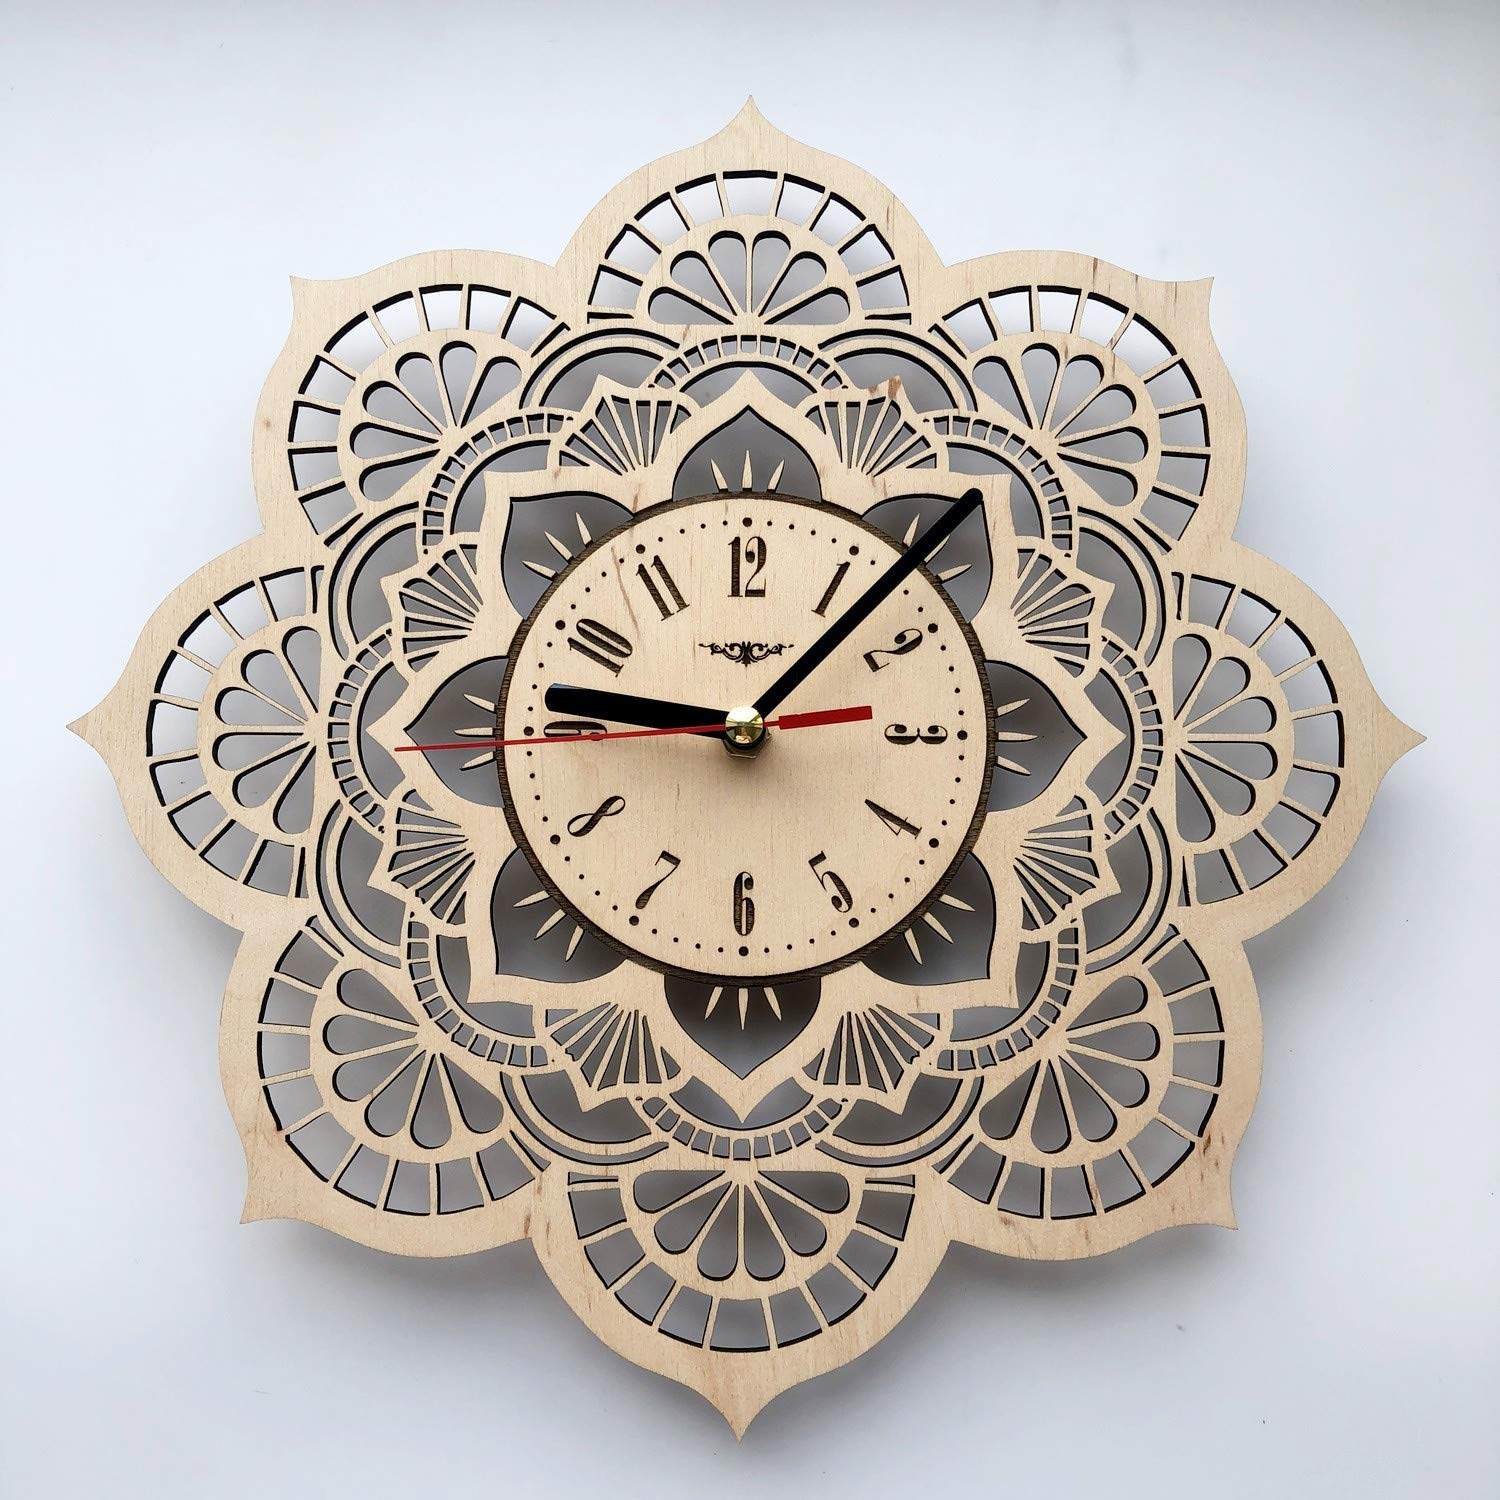 Flower Mandala Wall Clock Eco Wood Unique Gifts Ideas Original Presents Home Decor And Wall Art Design For Living Room Kitchen Bedroom Kids